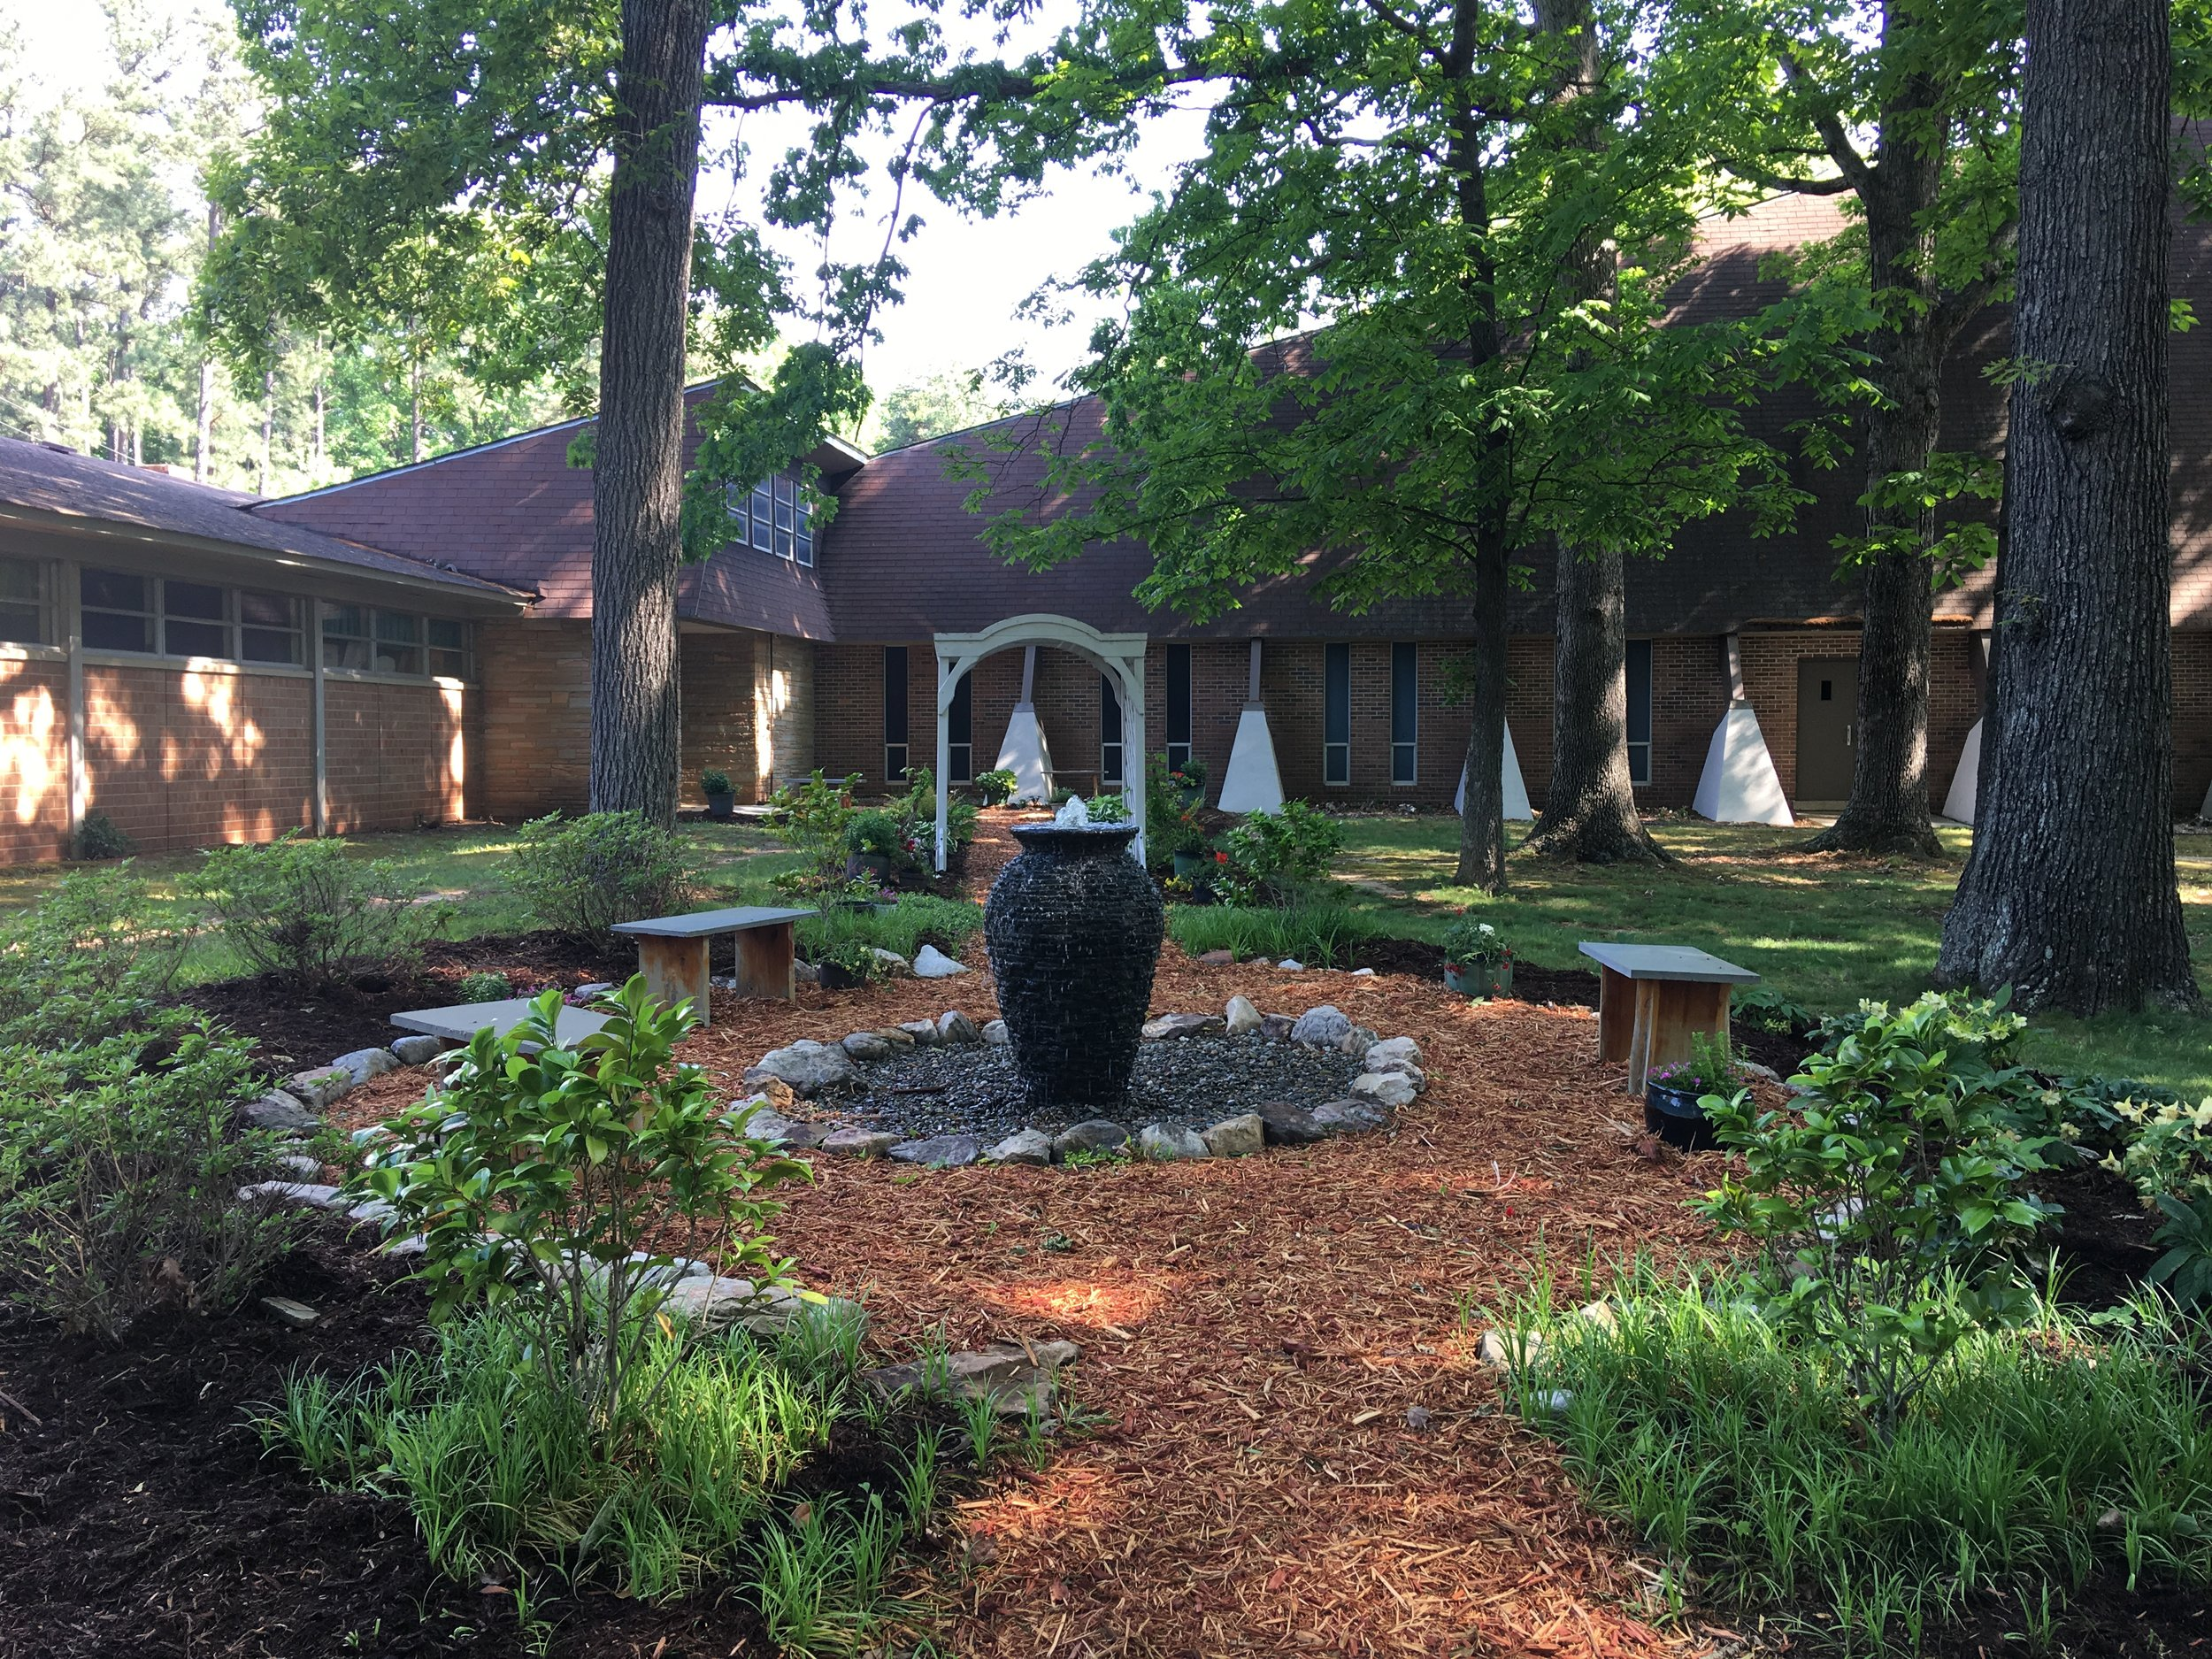 Prayer Garden in the springtime